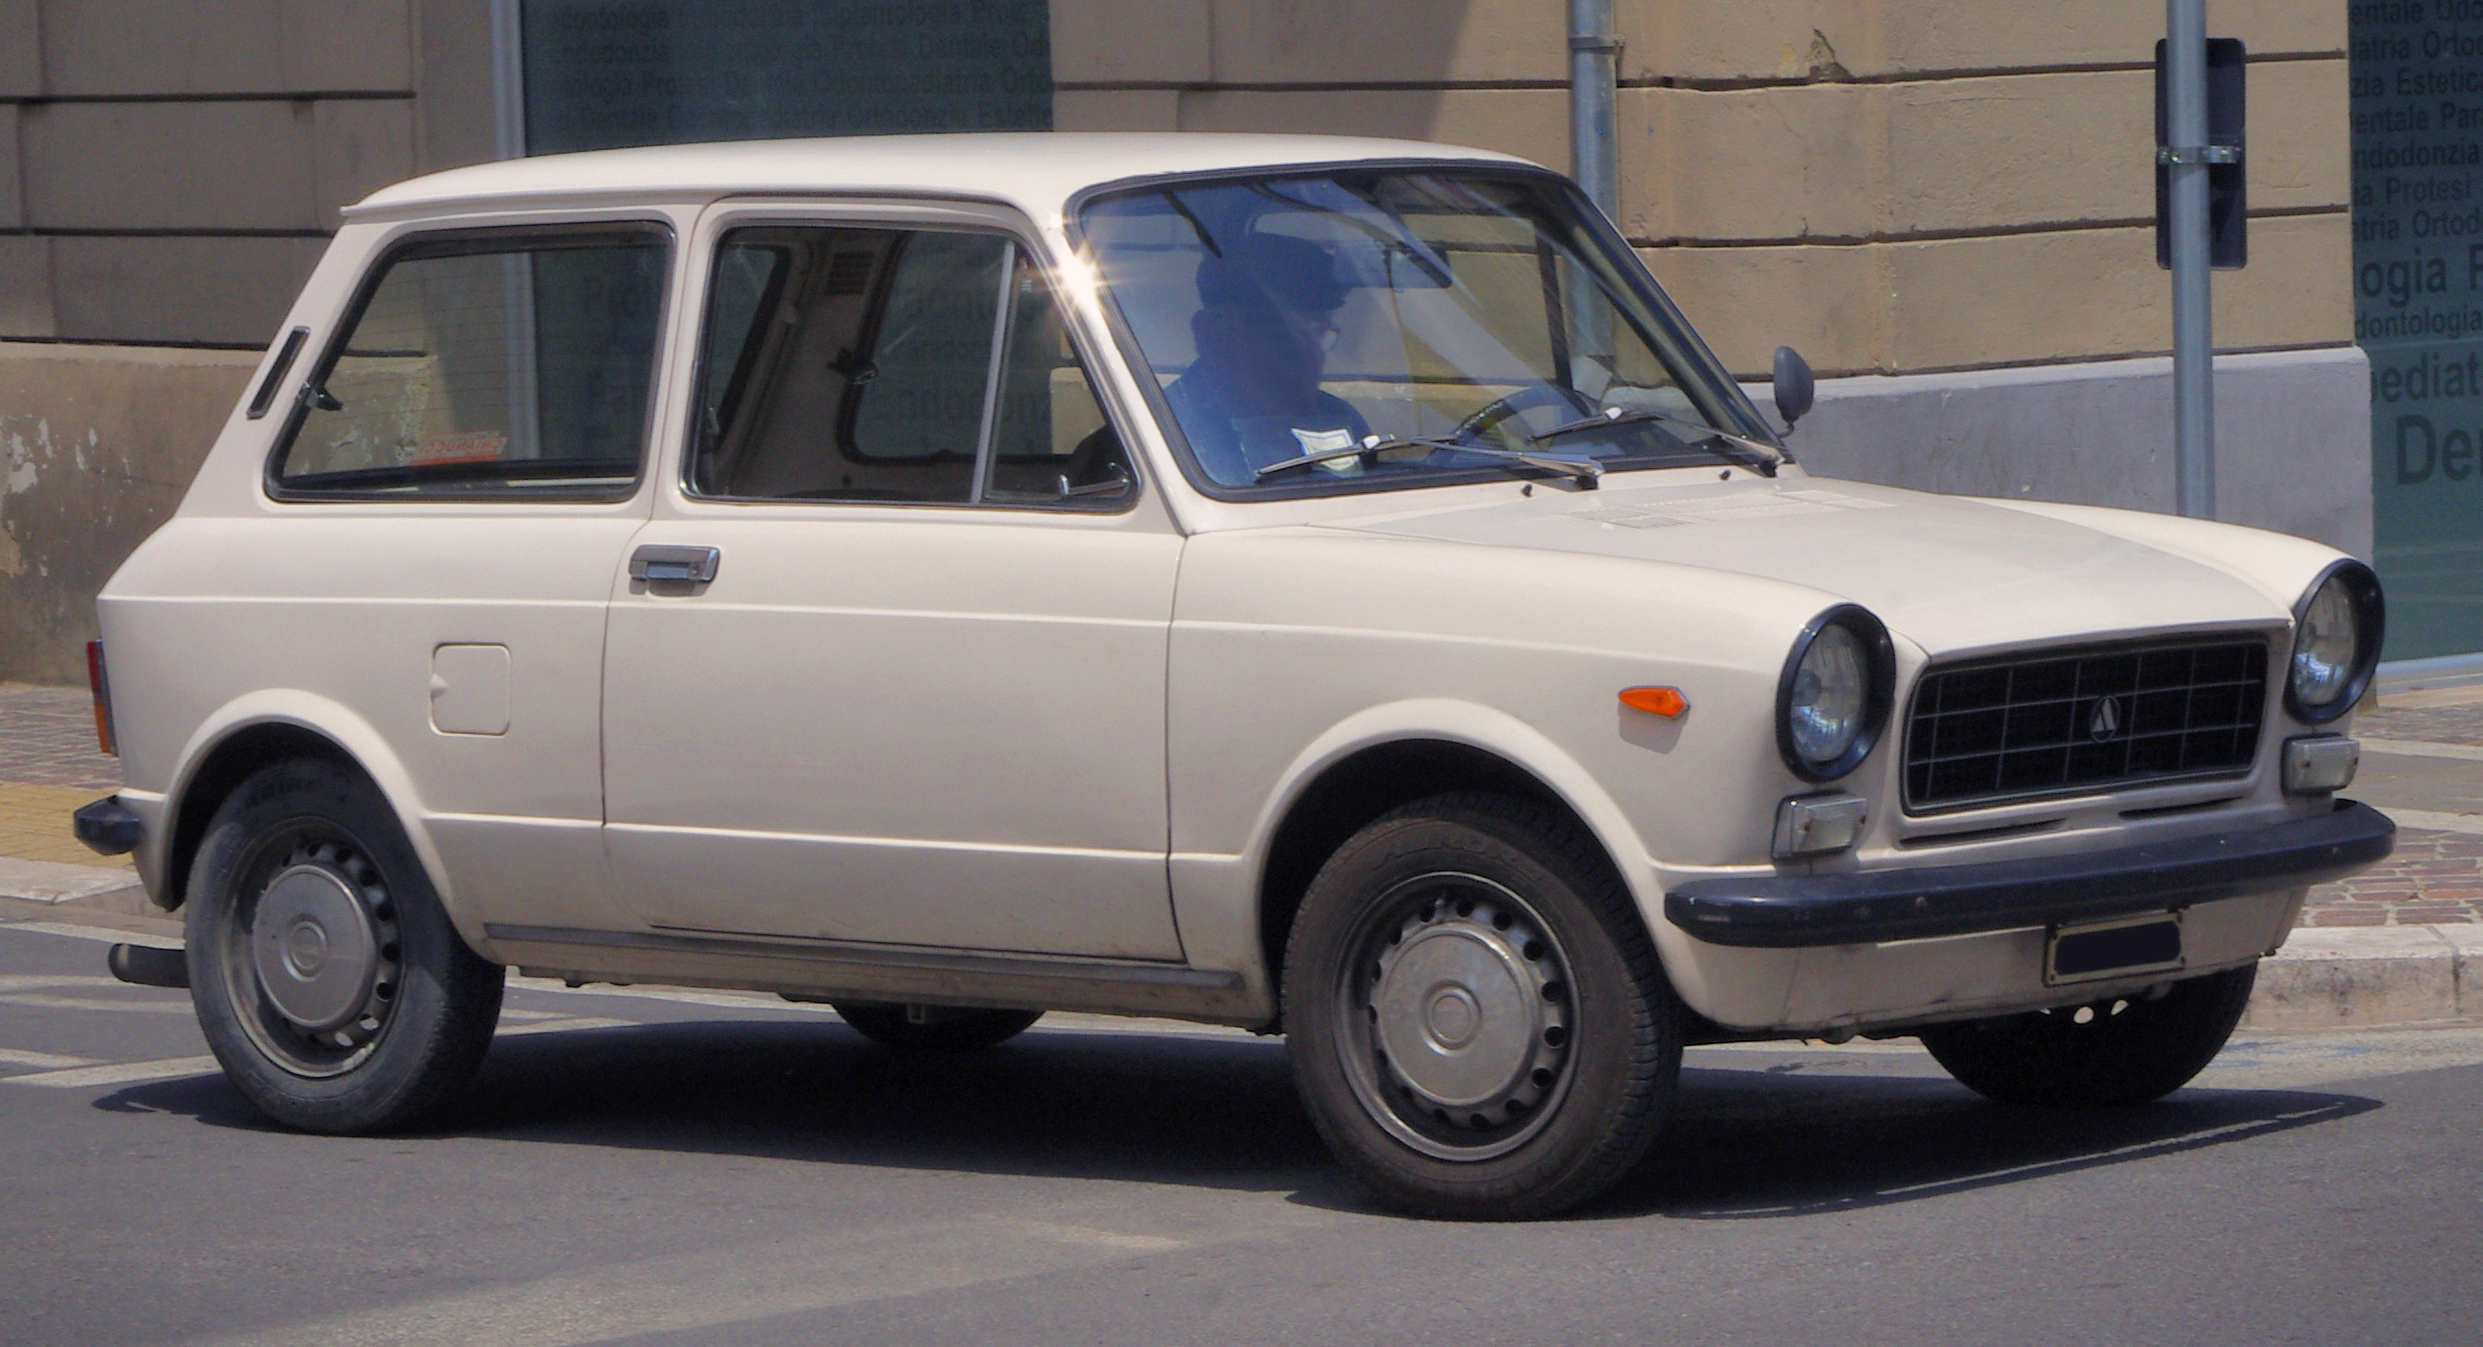 File:Autobianchi A112 Normale ca 1974.jpg - Wikimedia Commons